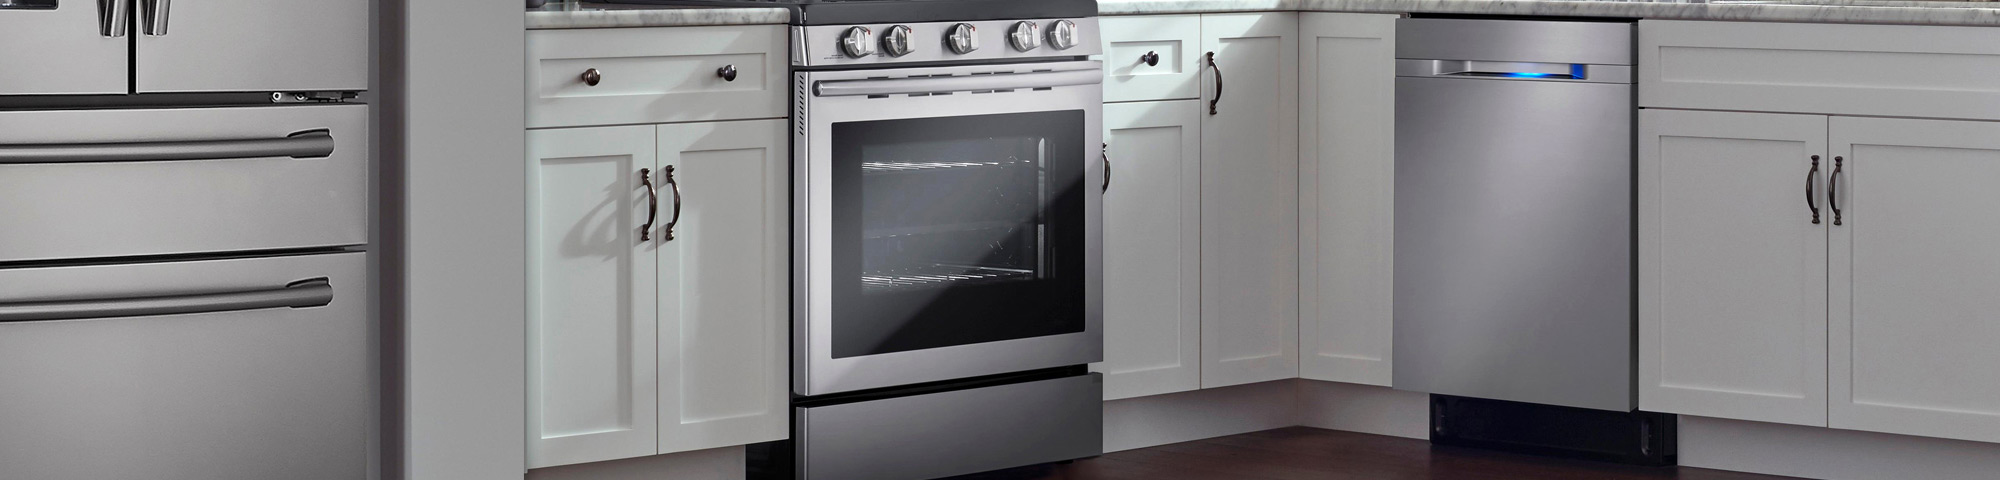 Best Slide-In Ranges 2019 - Electric and Gas Ovens With